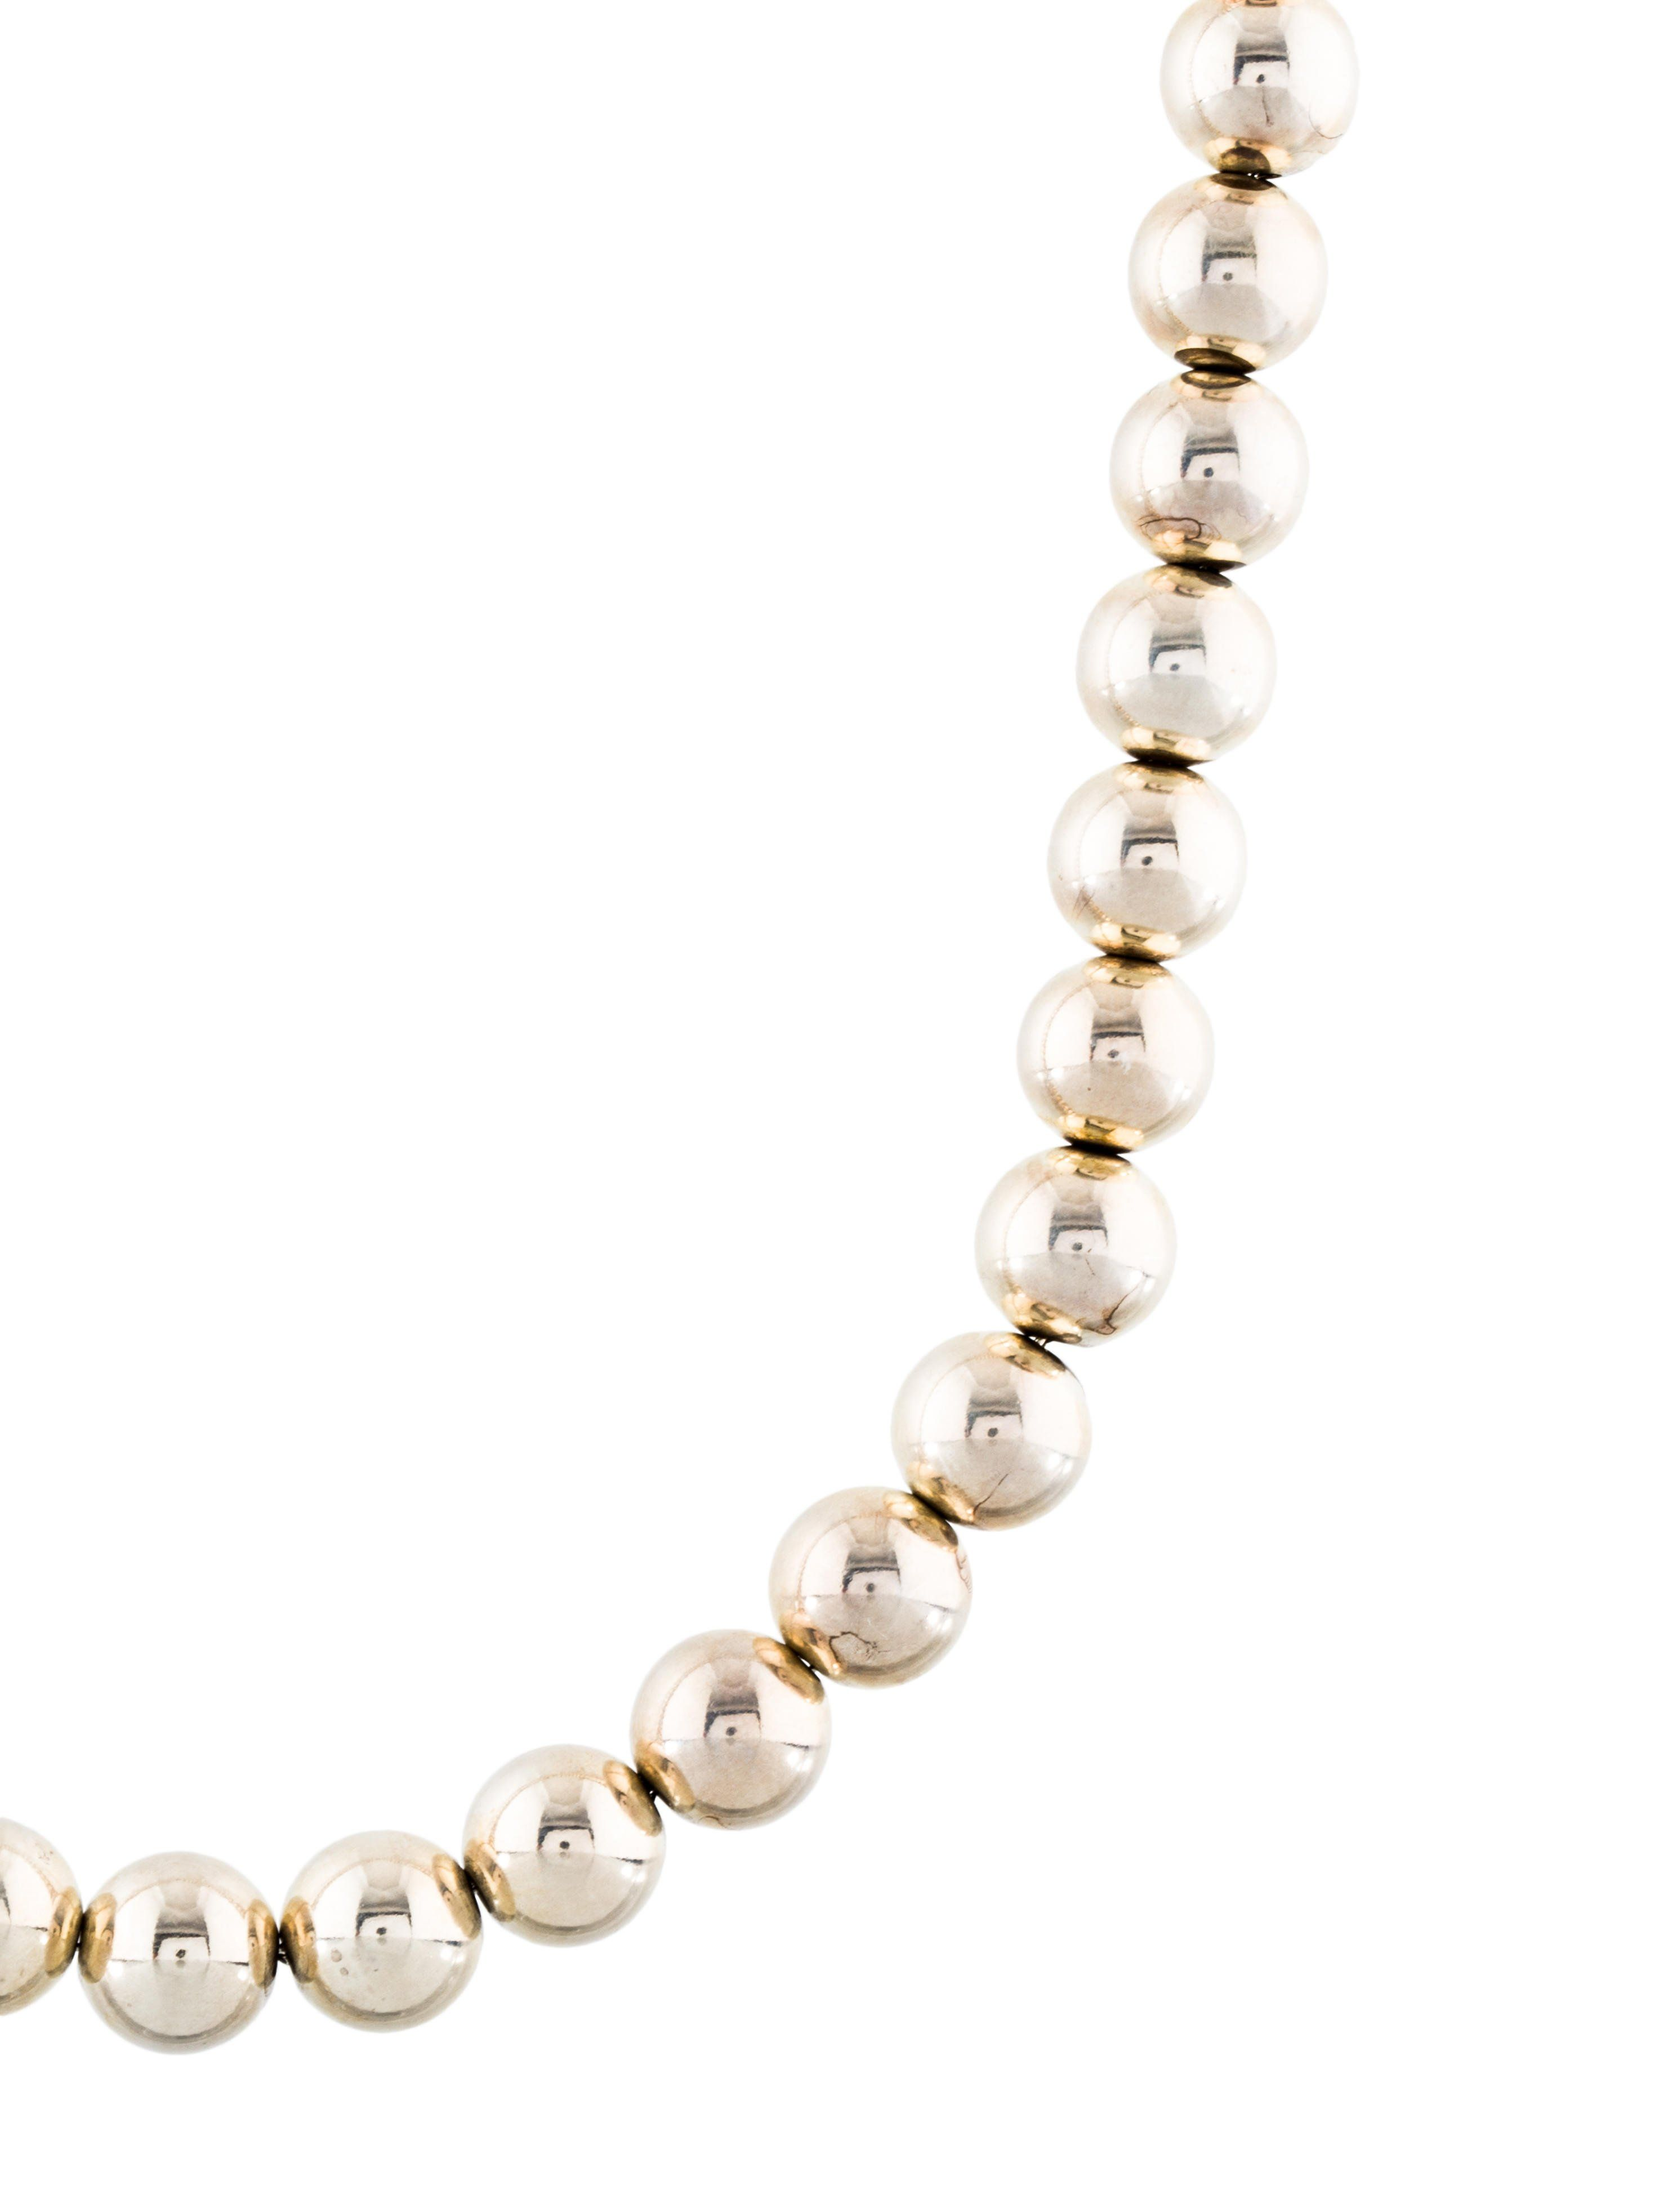 db293fb9c Sterling silver Tiffany & Co. HardWear Ball bead strand necklace featuring  high polish finish with